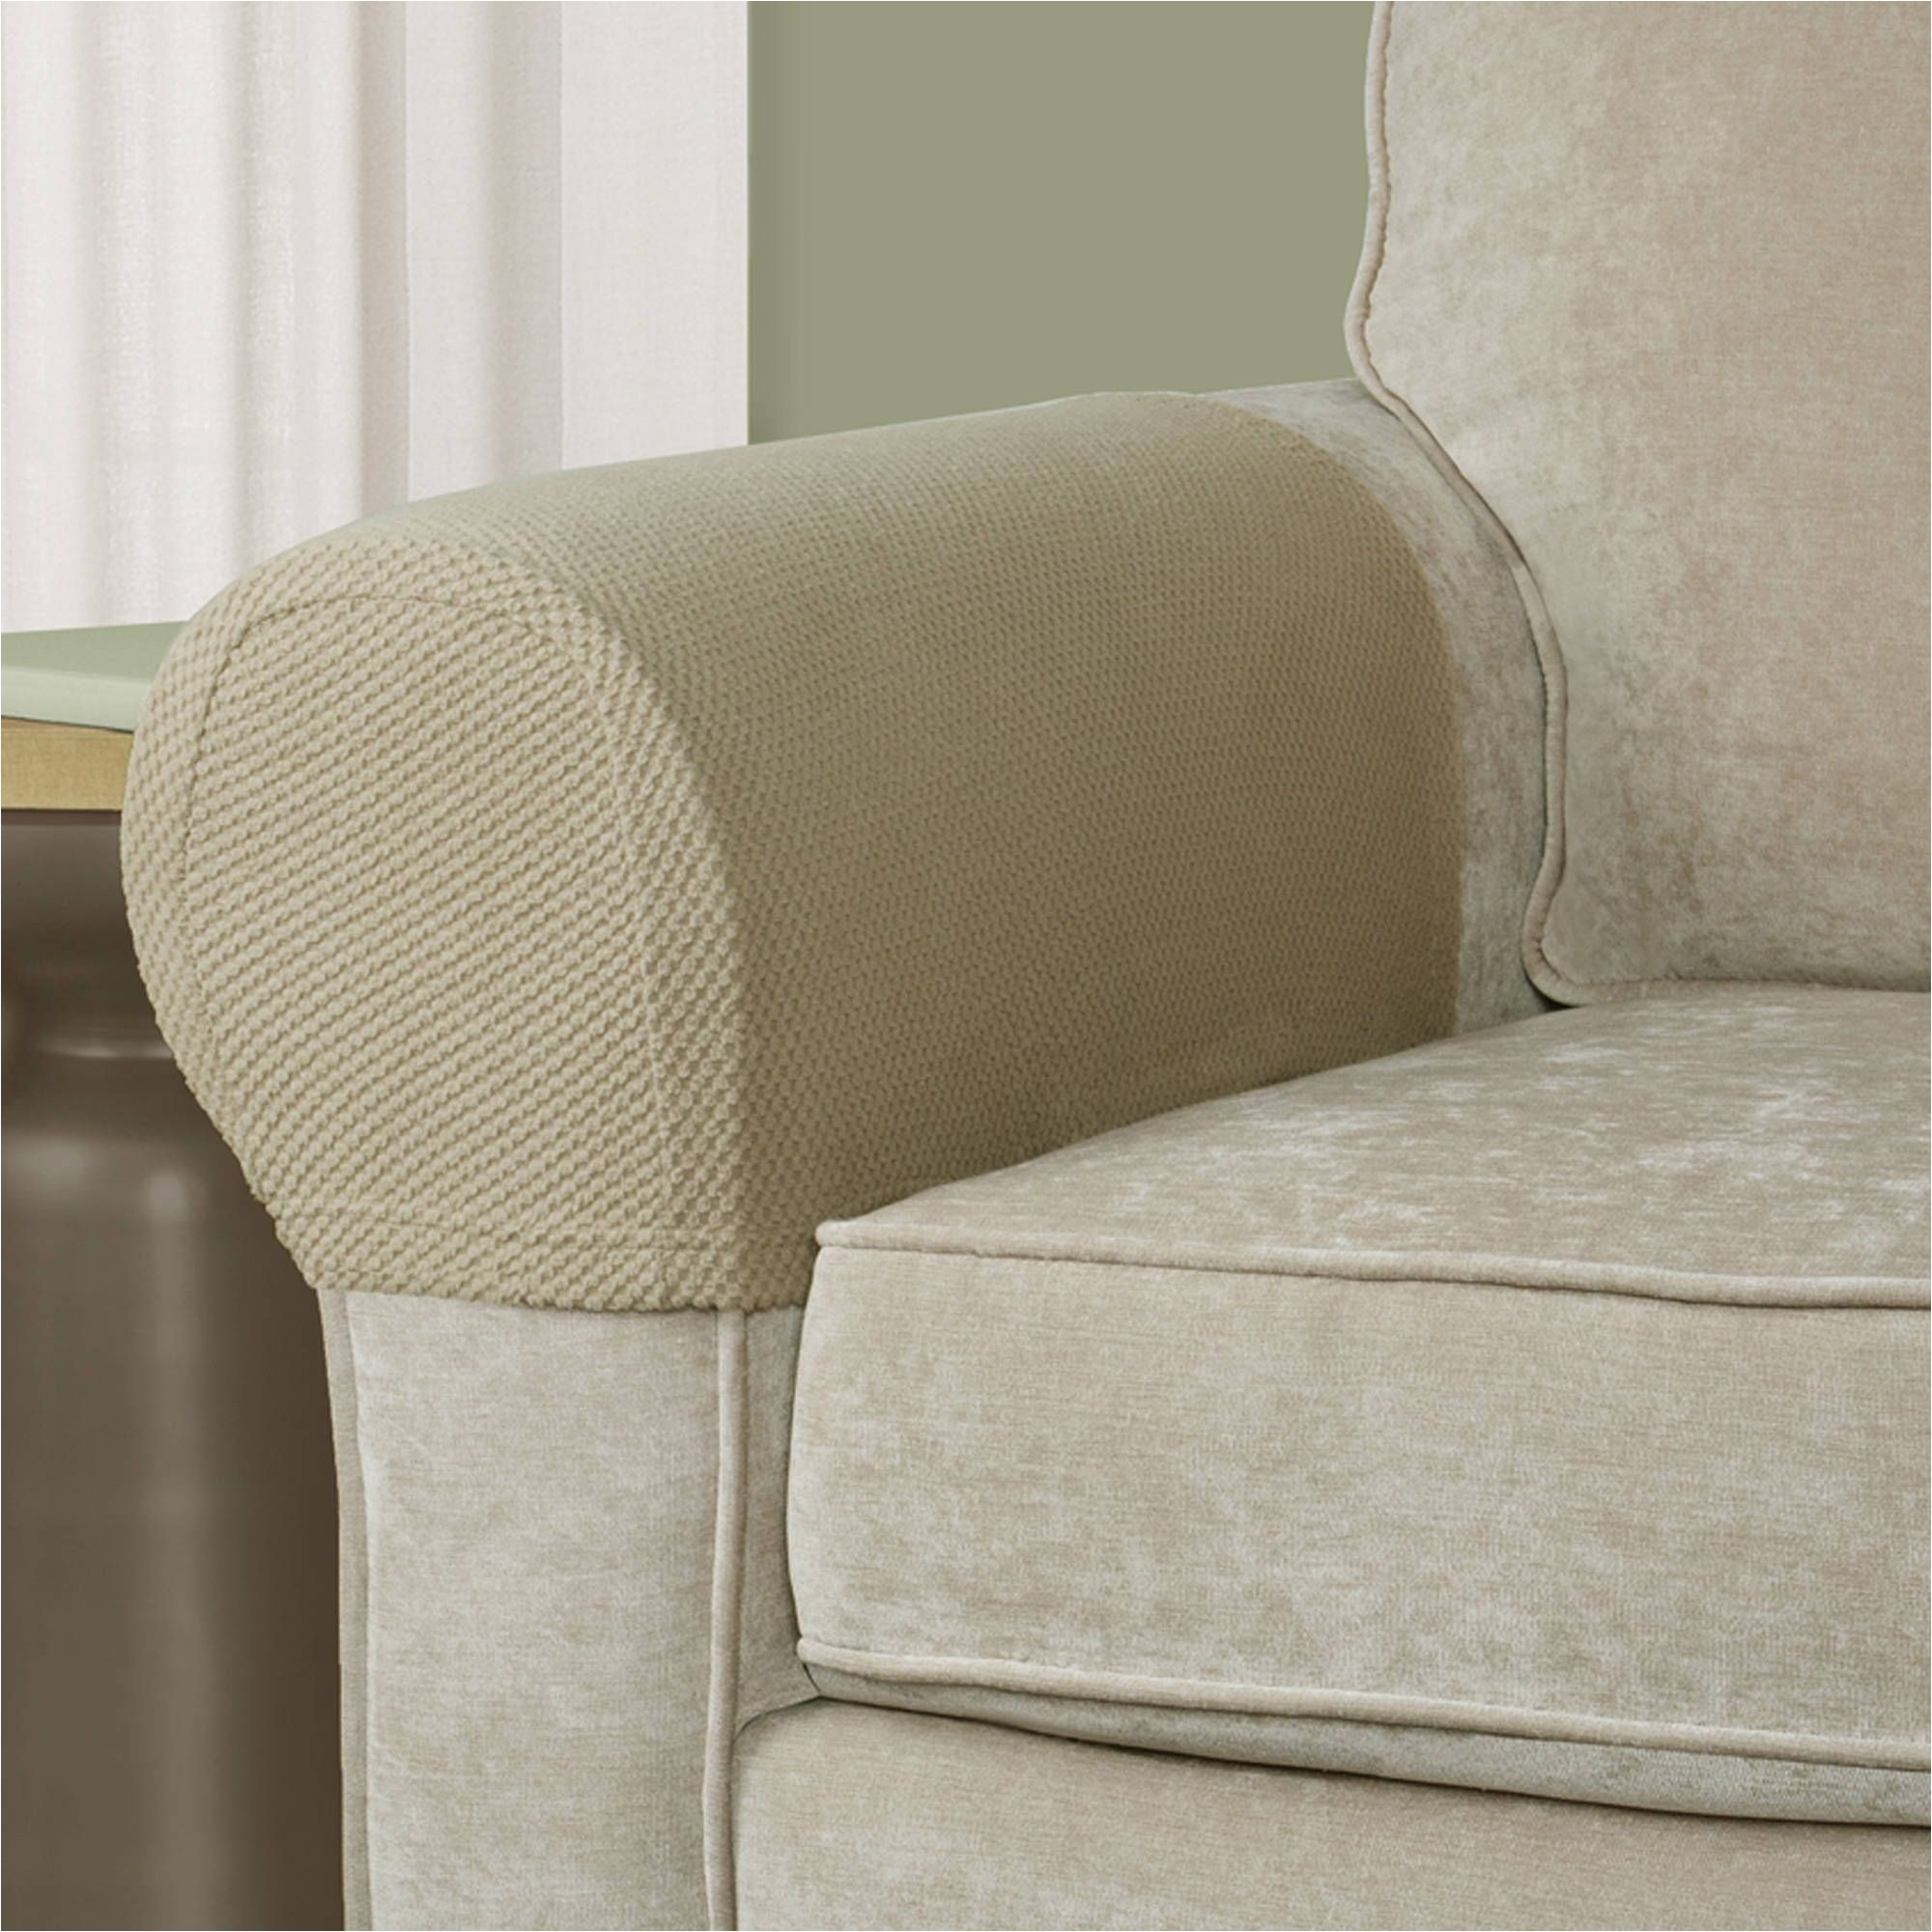 Overstuffed Chair Arm Covers Elegant Armchair Arm Covers Lumsden Homes